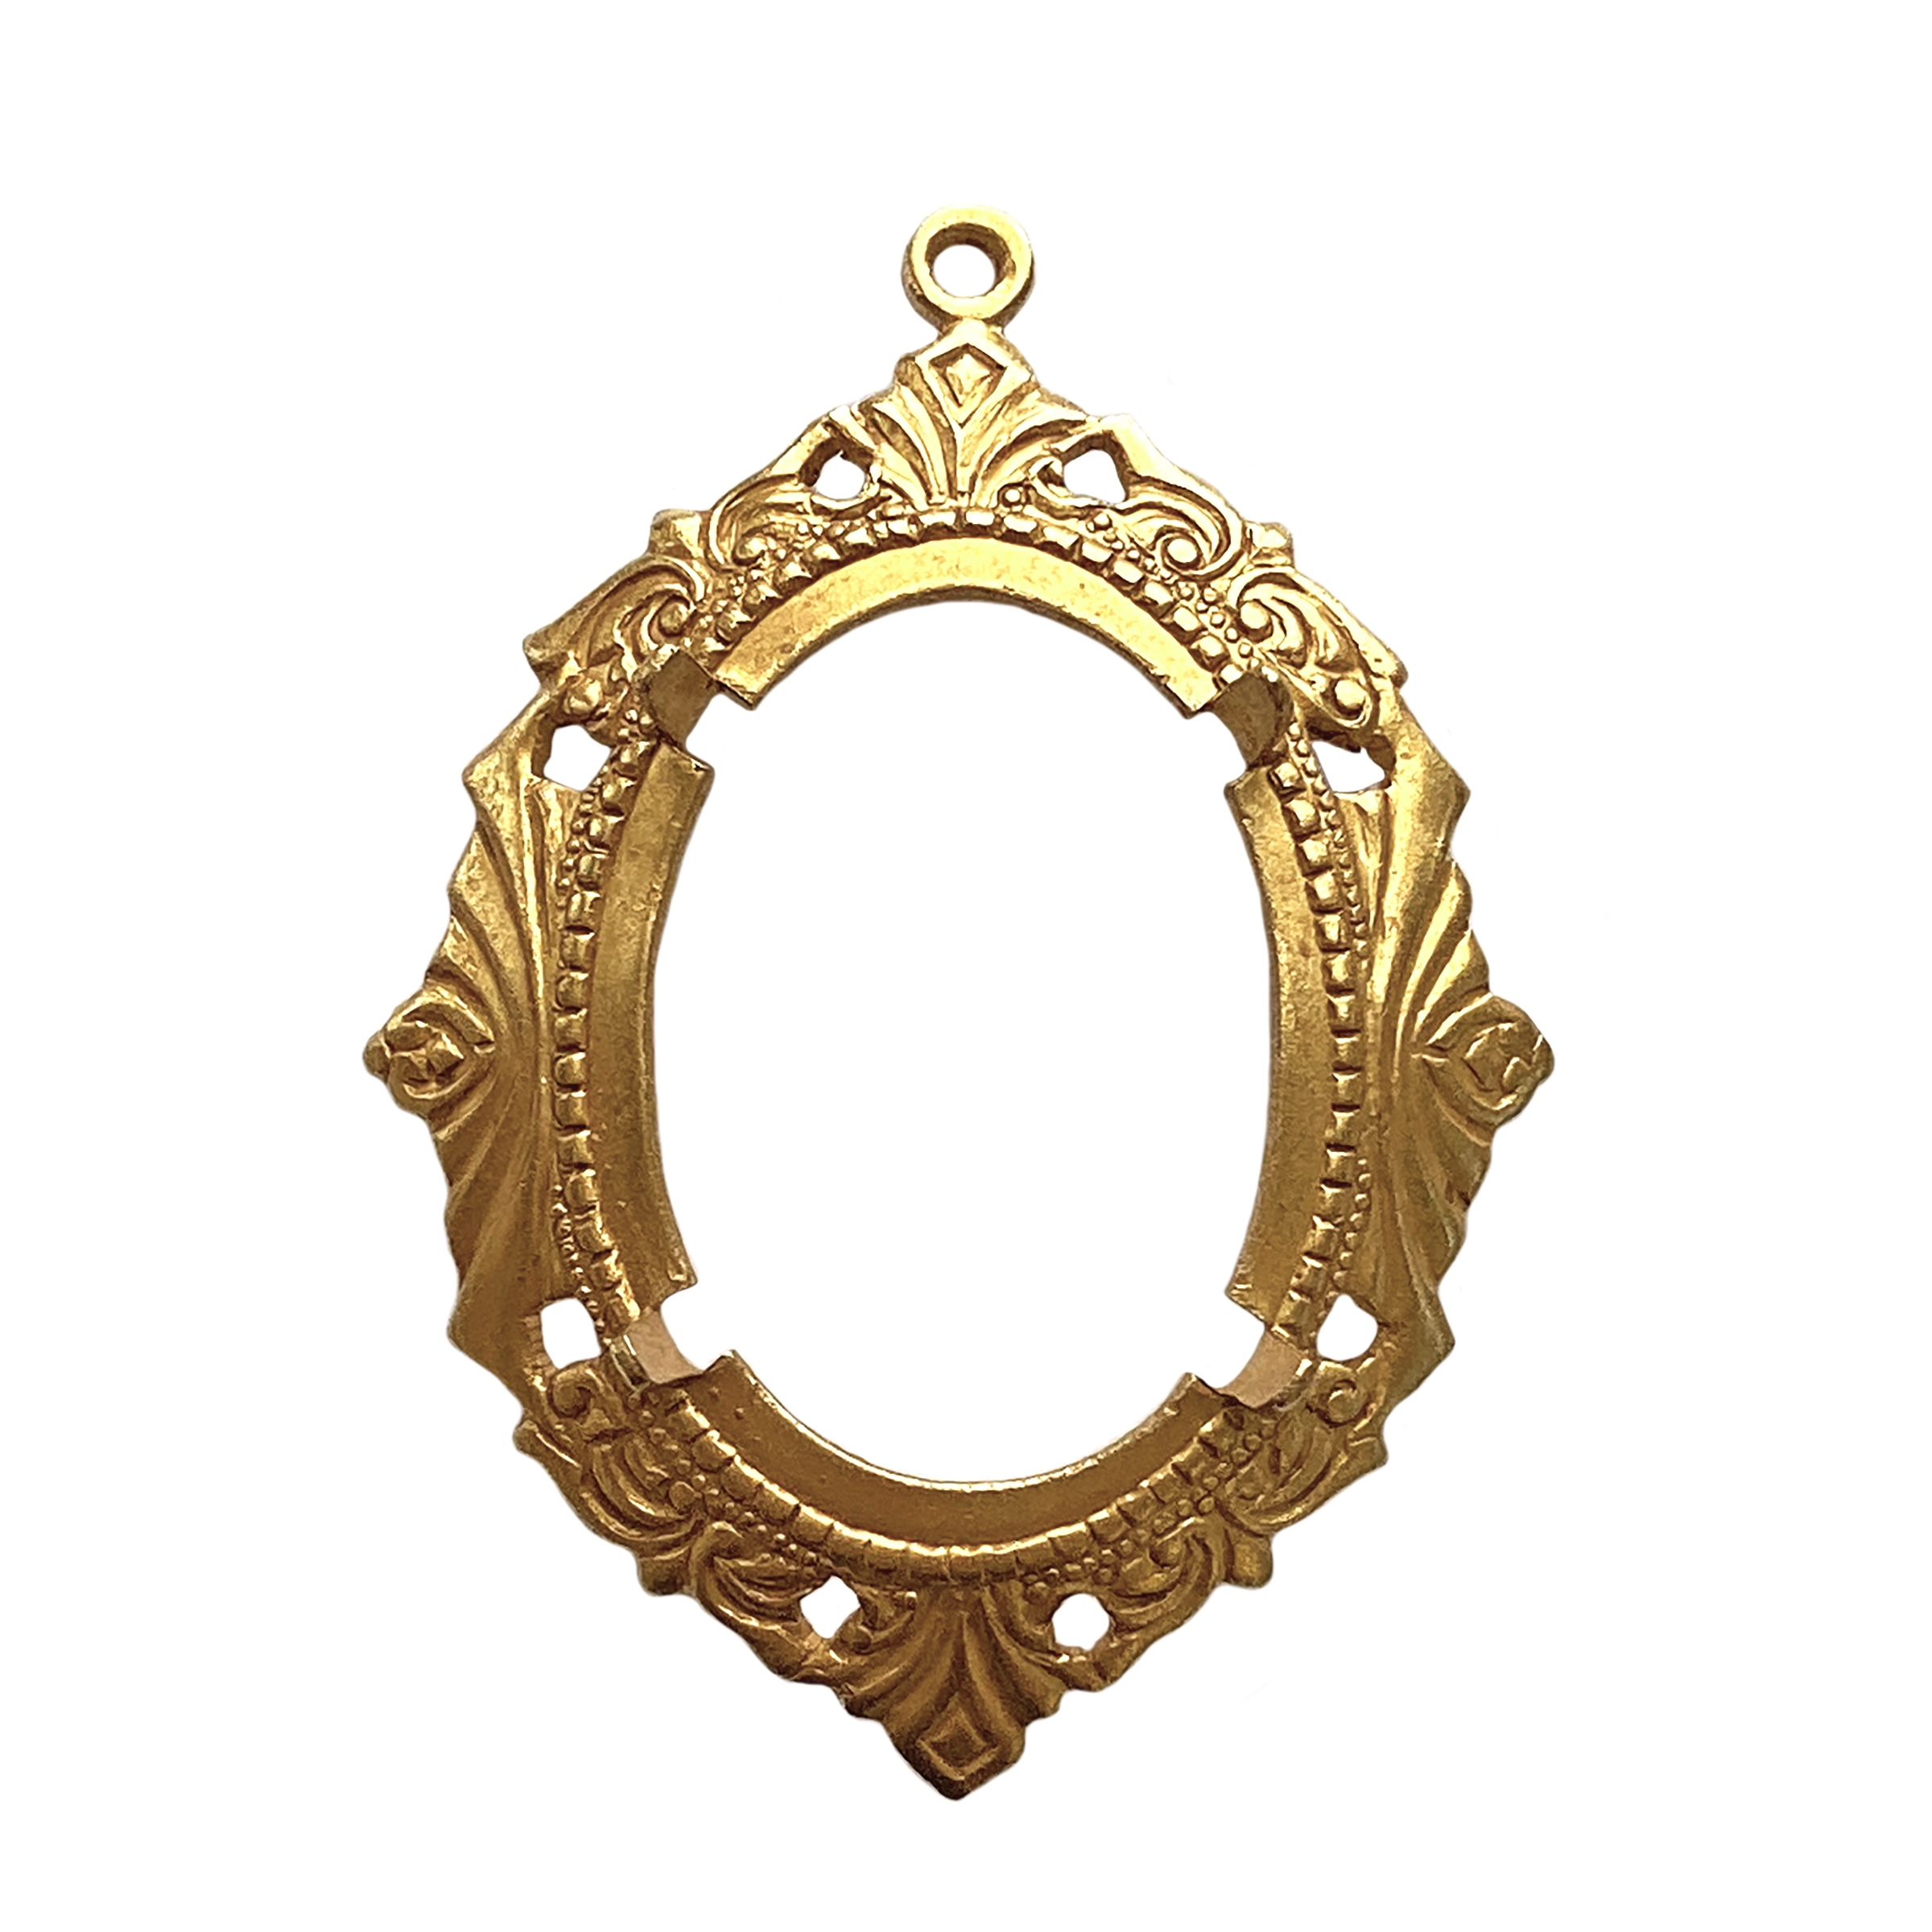 backless Victorian jewelry mount, classic gold finish, mount, pendant, backless mount, pendant mount, antique gold, jewelry mount, floral design, floral border mount, 25x18mm mount, jewelry making, jewelry supplies, stamping, B'sue, bezel, gold, 01702